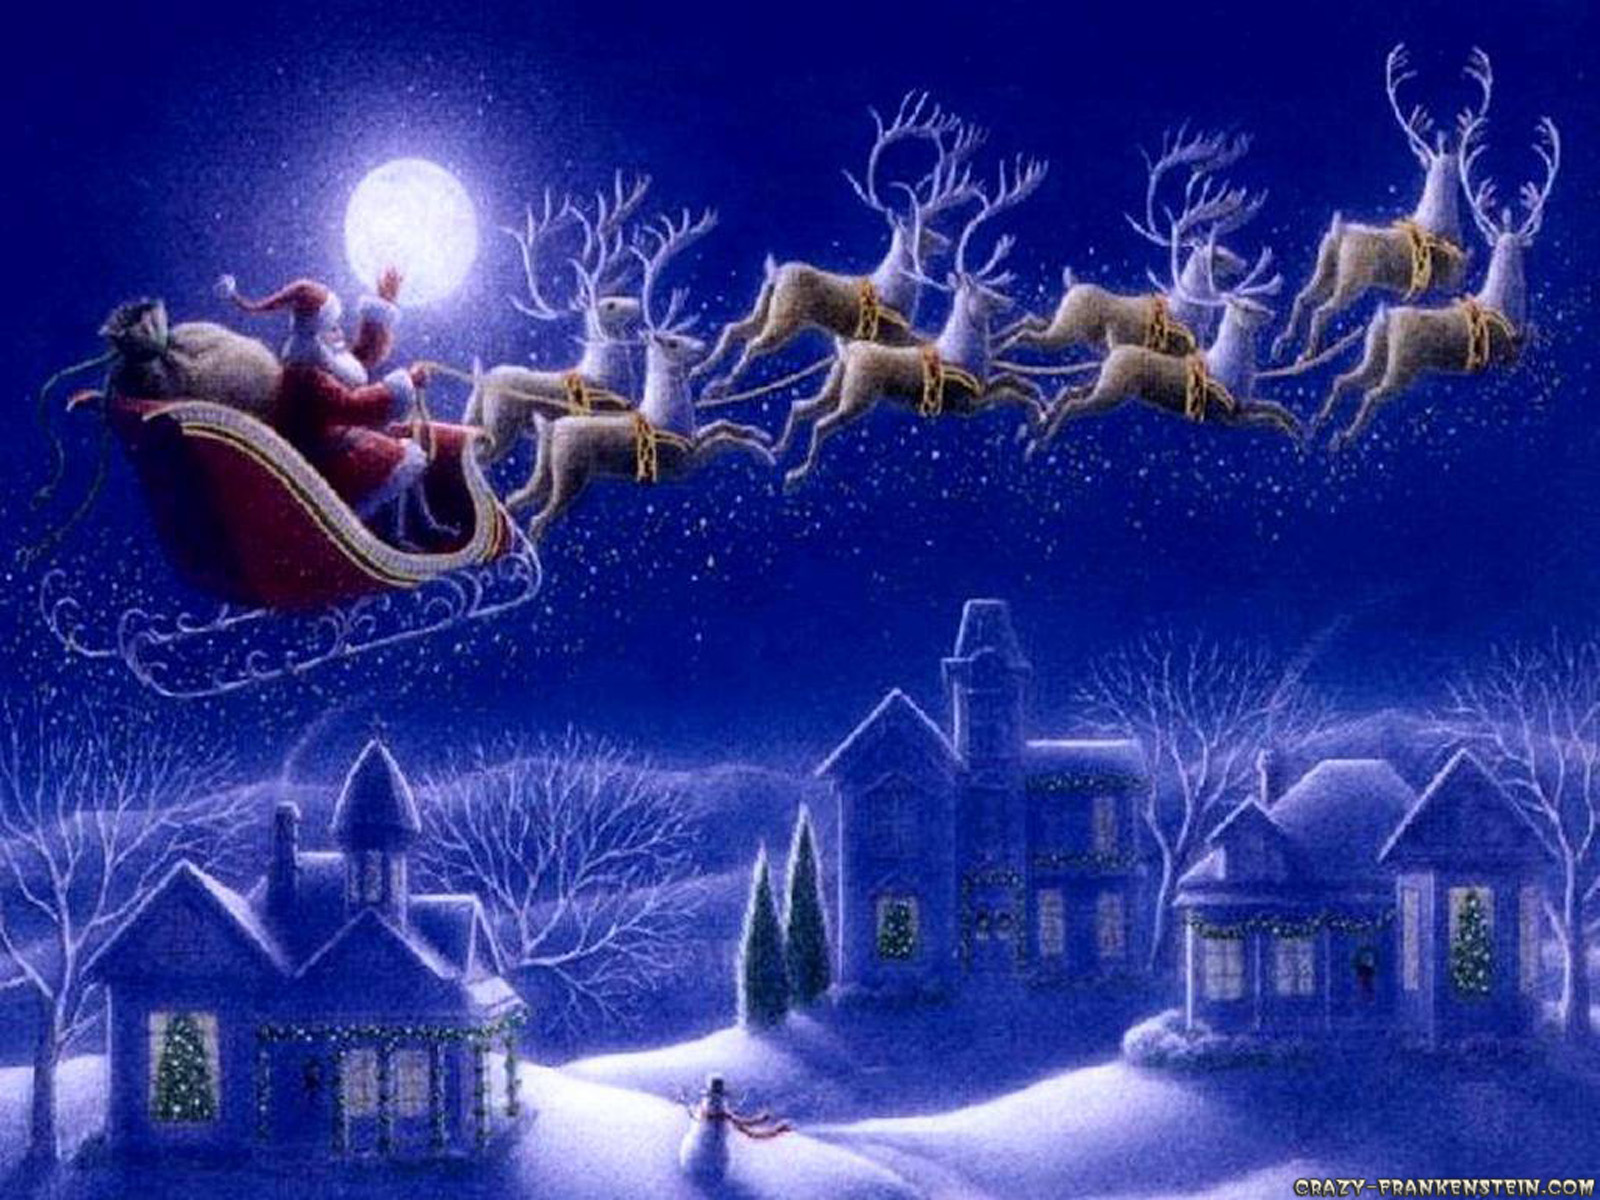 Merry Christmas 2013 Wallpapers HD | My image